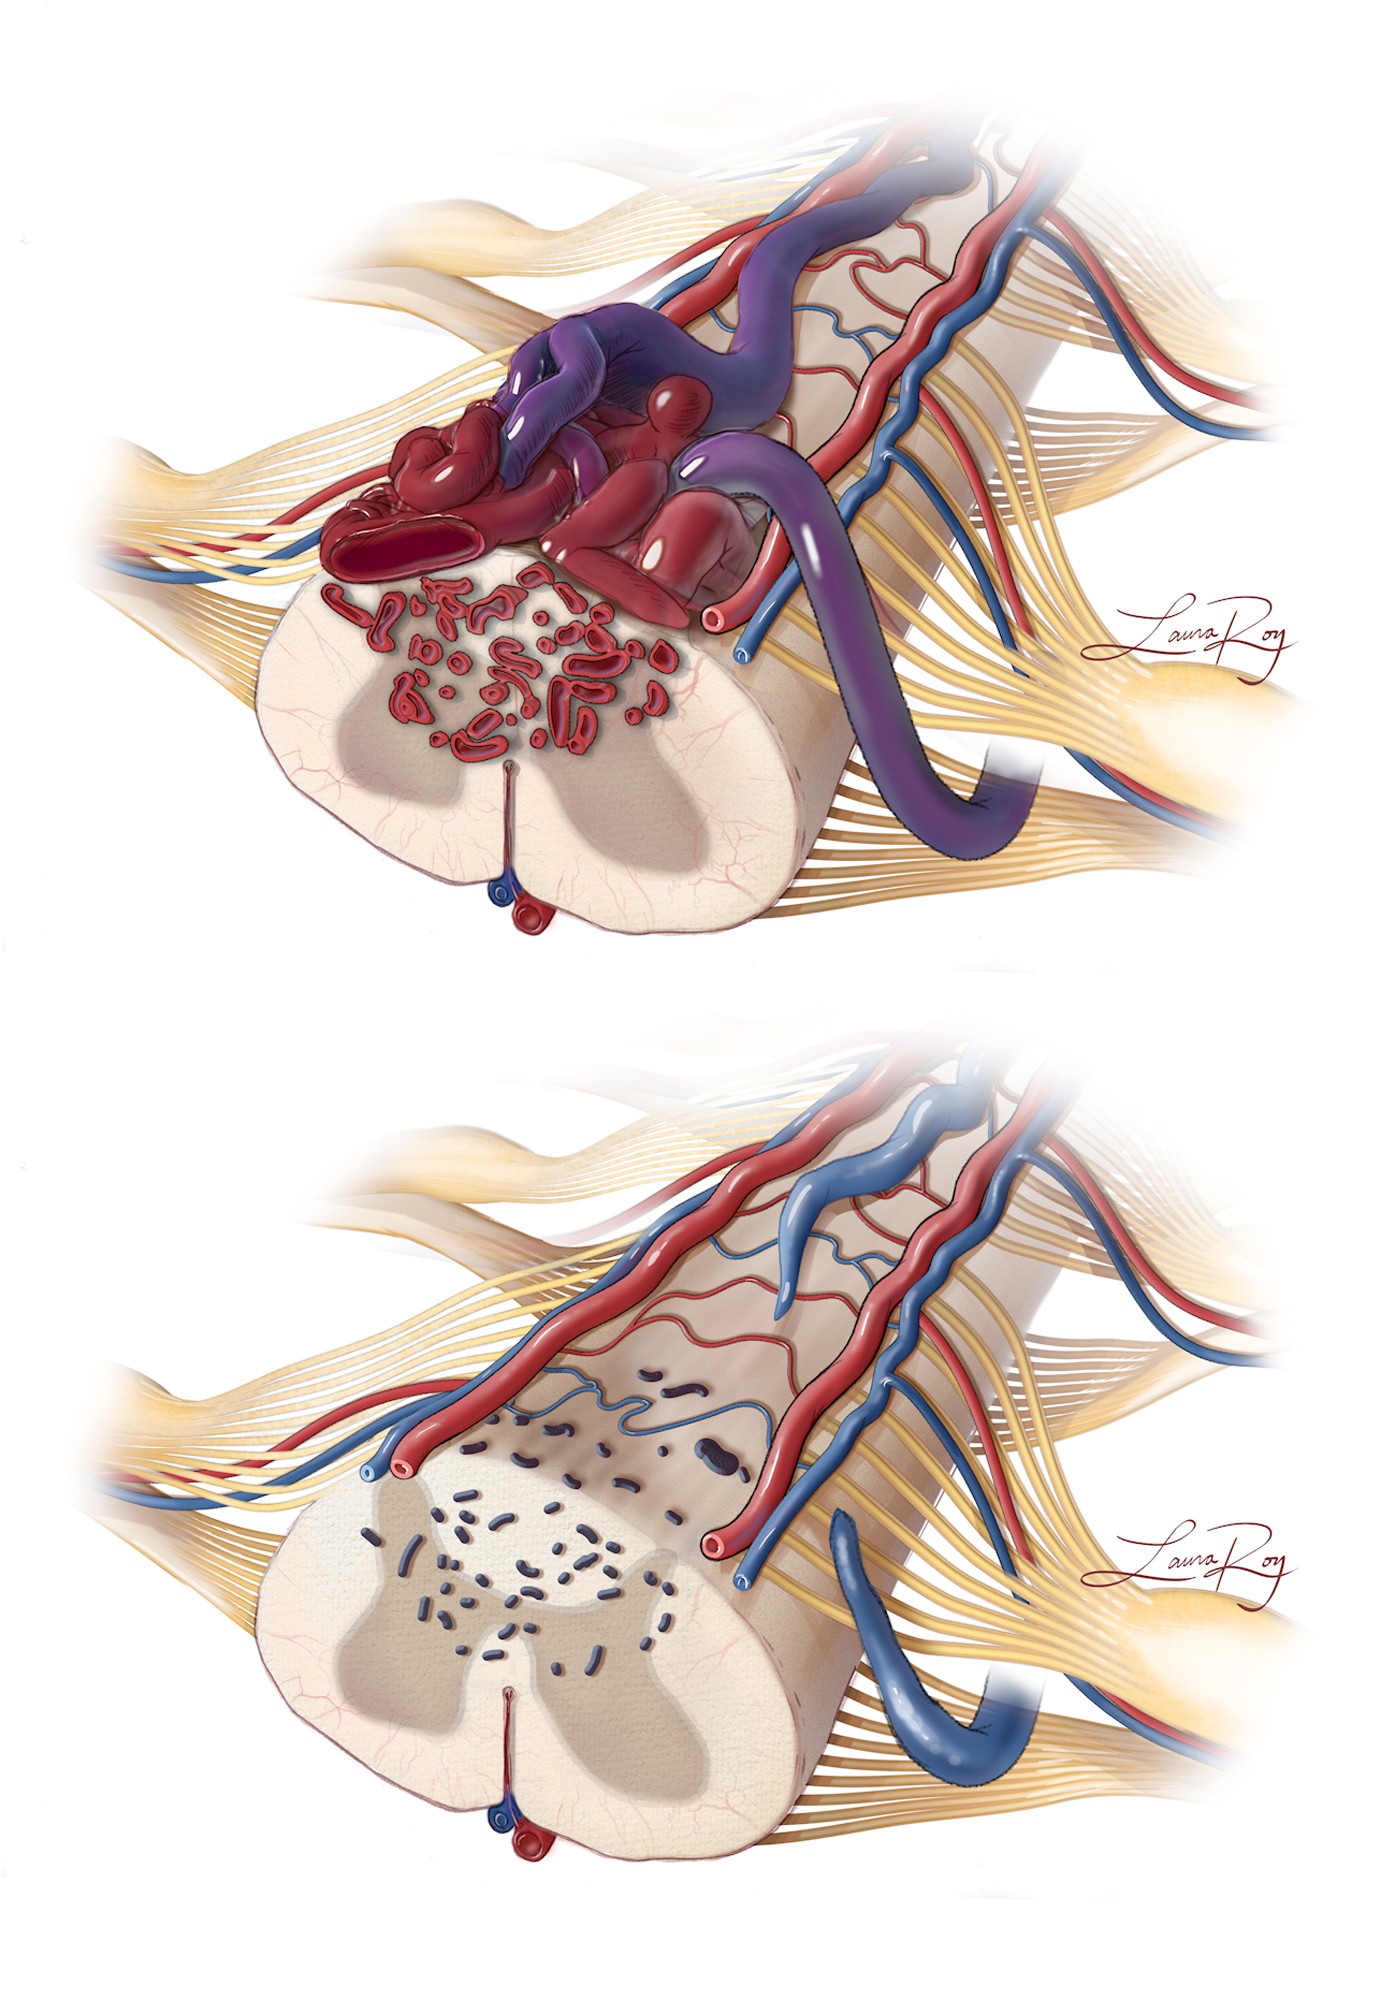 Figure 7: In this schematic representation, the pial resection technique is further illustrated. The nidus is embedded in the cord parenchyma and extrapial space (top image). After resecting the extrapial portion via epipial dissection, the remaining parenchymal component is devascularized and obliterated (bottom image).